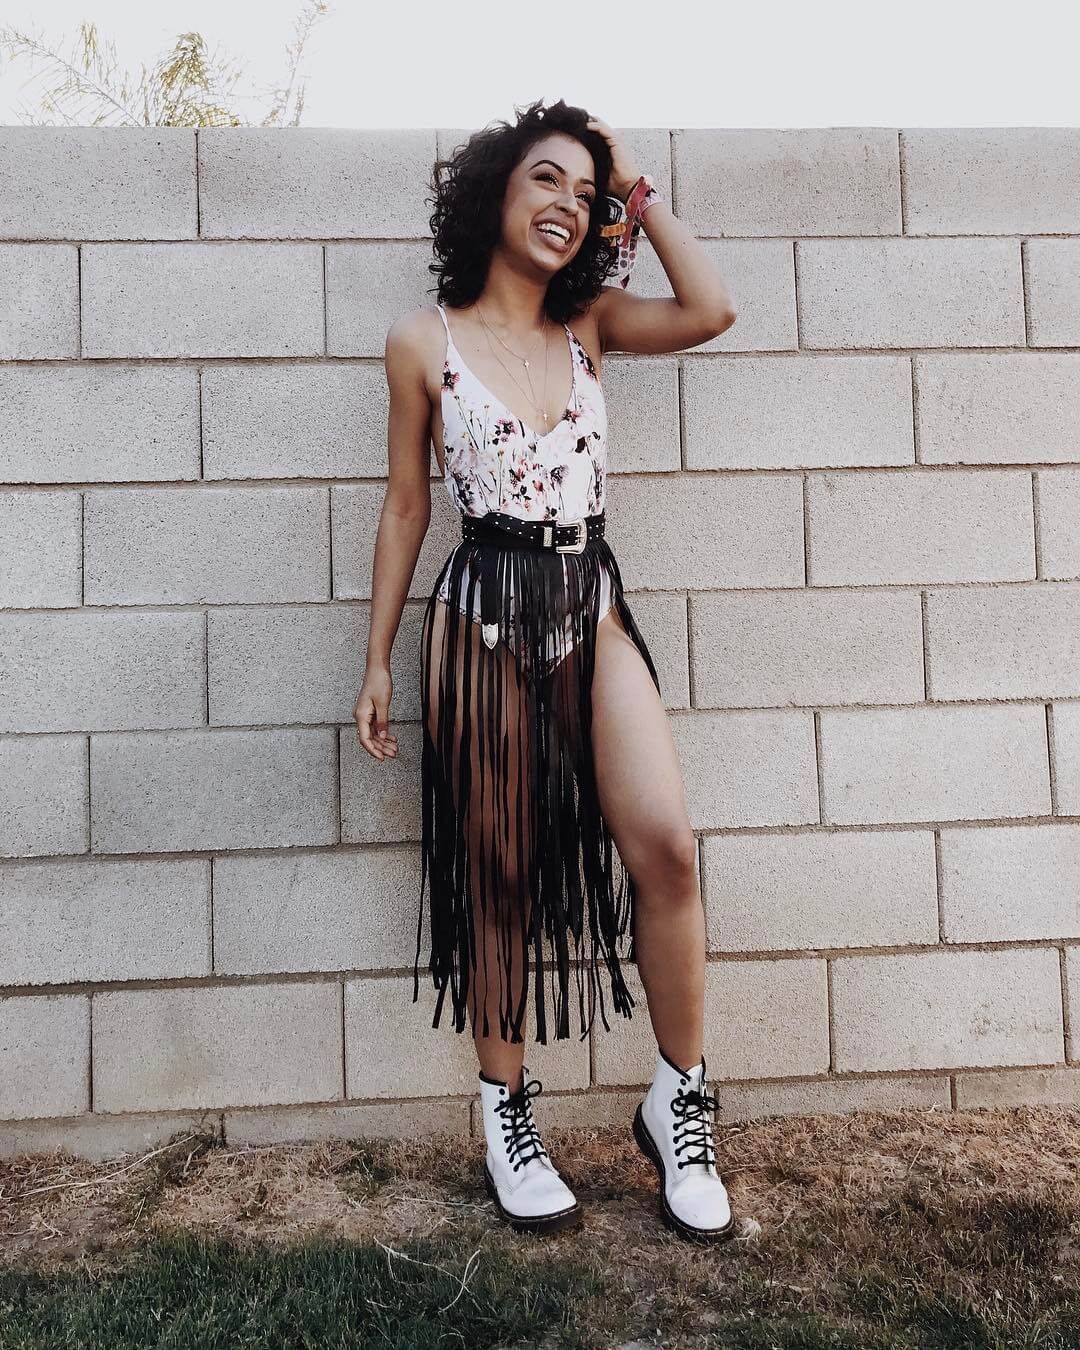 49 Hot Pictures Of Liza Koshy Will Bring Big Grin On Your Face